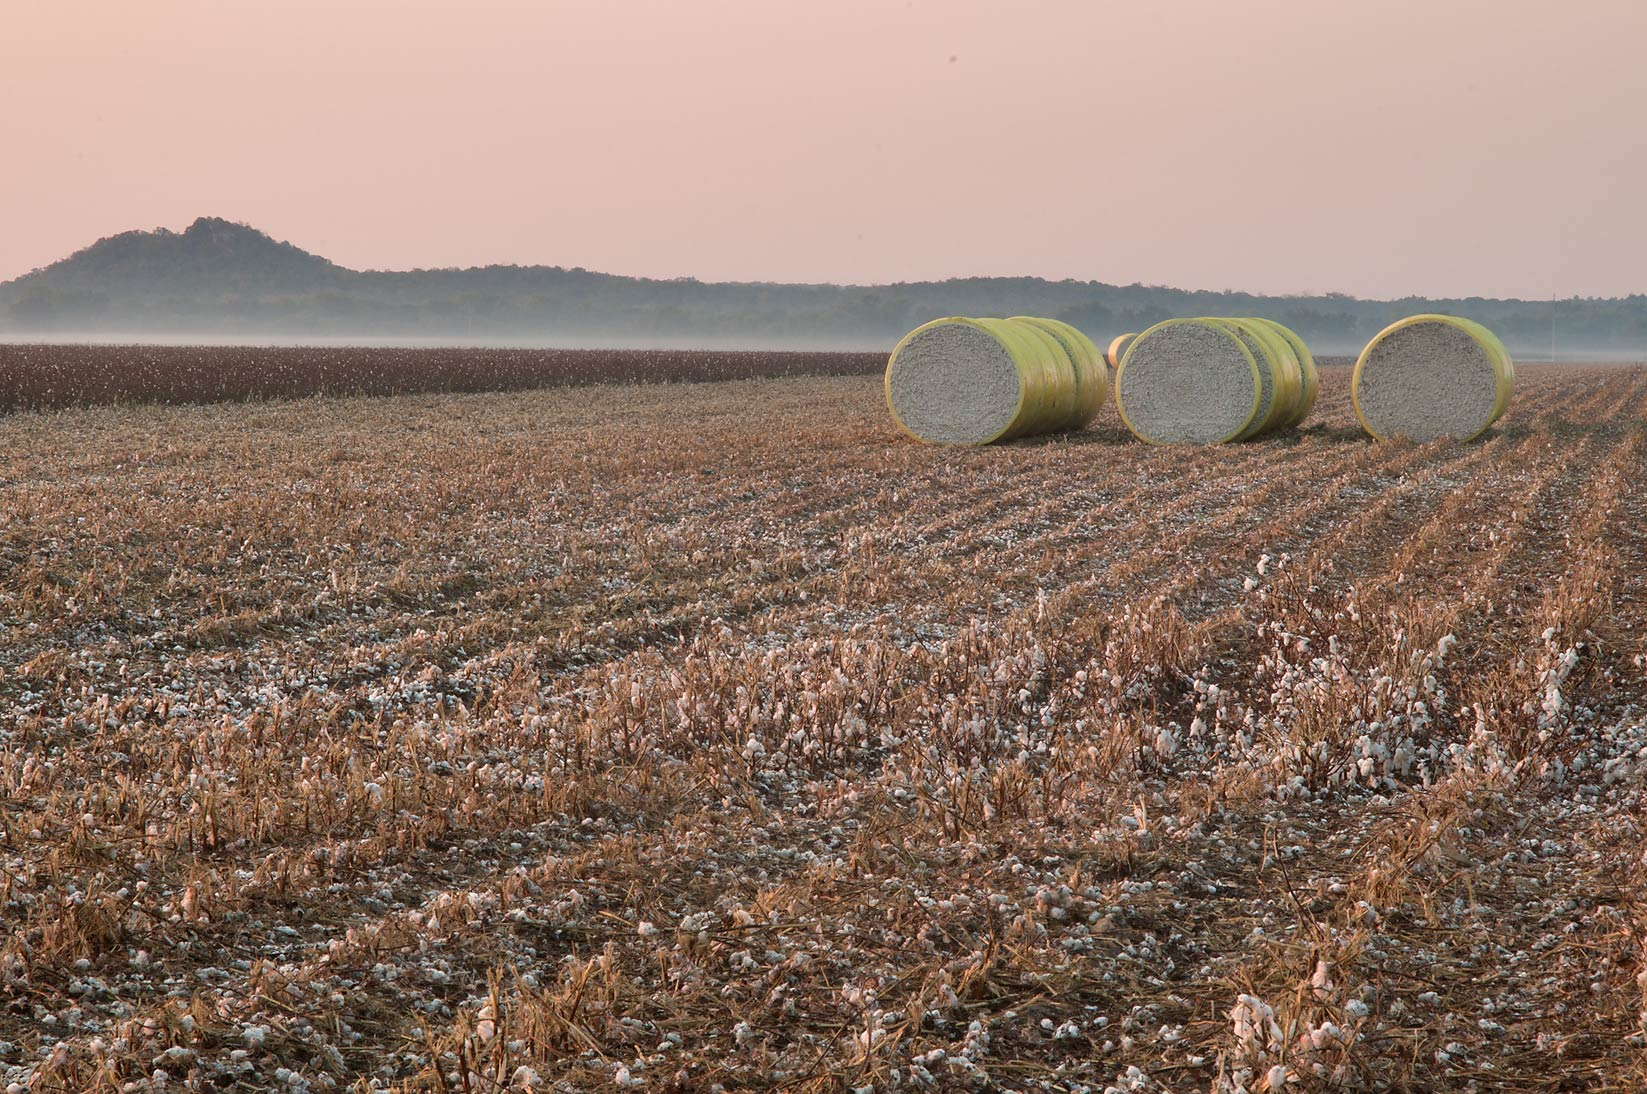 Bails of cotton near CR 264, with Sugarloaf Mountain on horizon. Gause, Texas